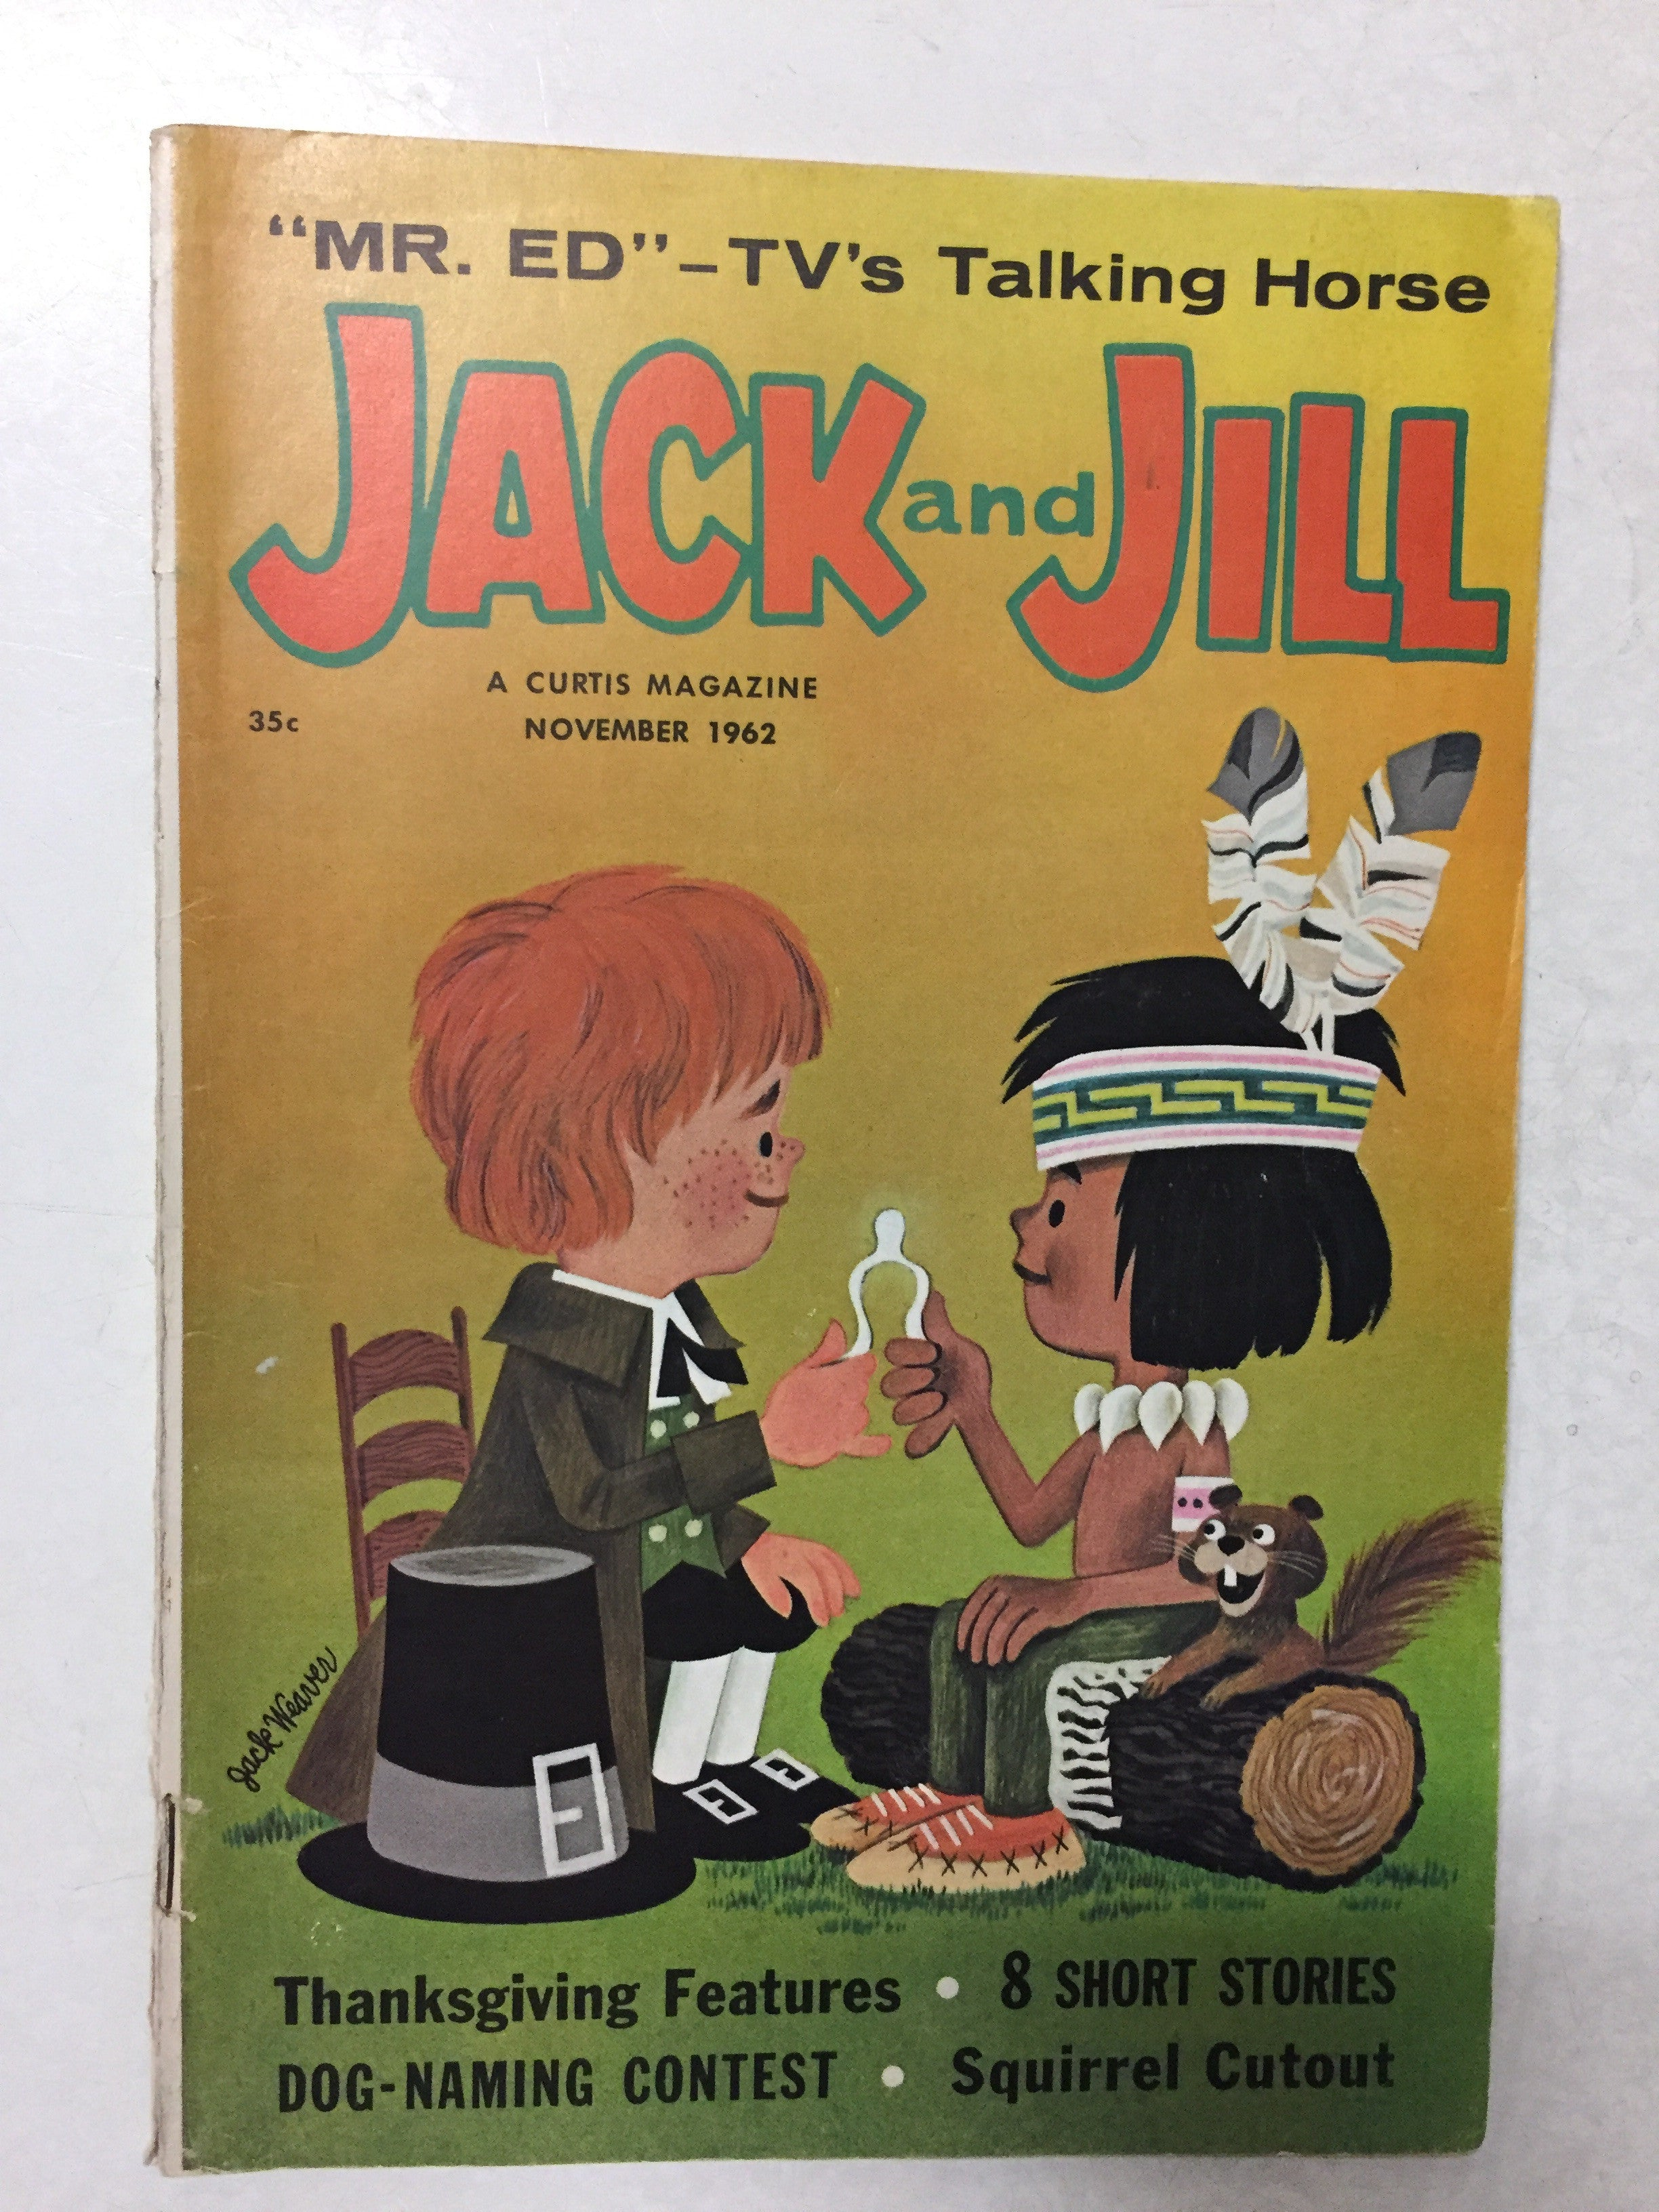 Jack and Jill November 1962 - Slickcatbooks